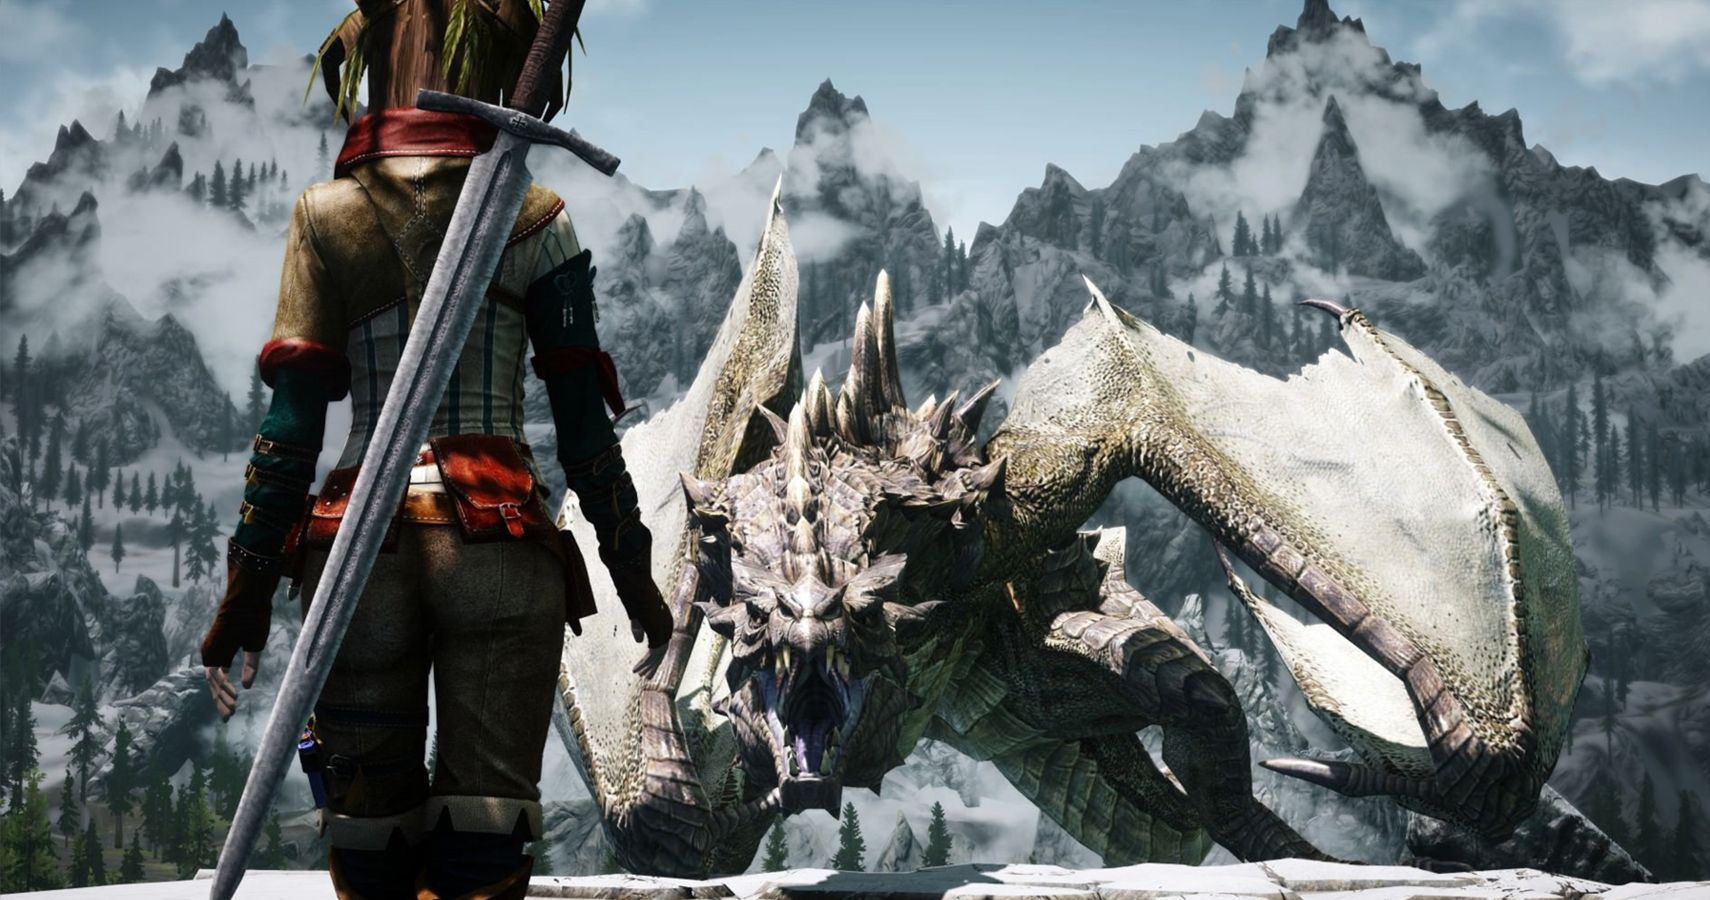 Skyrim: 15 Overpowered Items Casual Fans Will Never Find (And 5 That